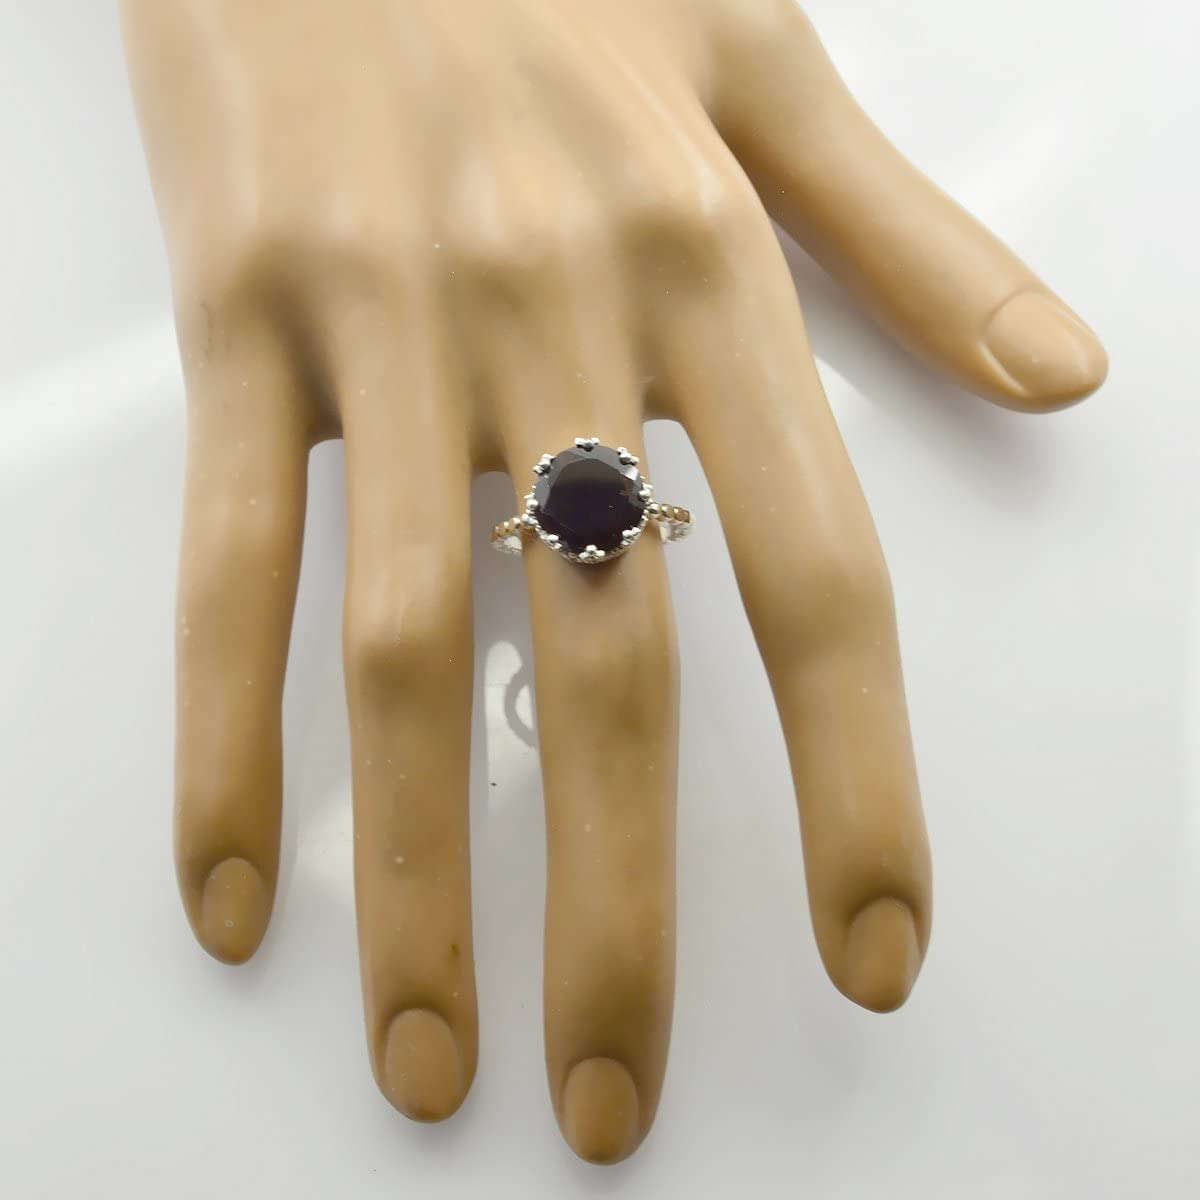 jents Jewelry Good Item Gift for Girlfriend Bohemian Lucky Gemstone Round Faceted Garnet Ring 925 Sterling Silver Red Garnet Lucky Gemstone Ring